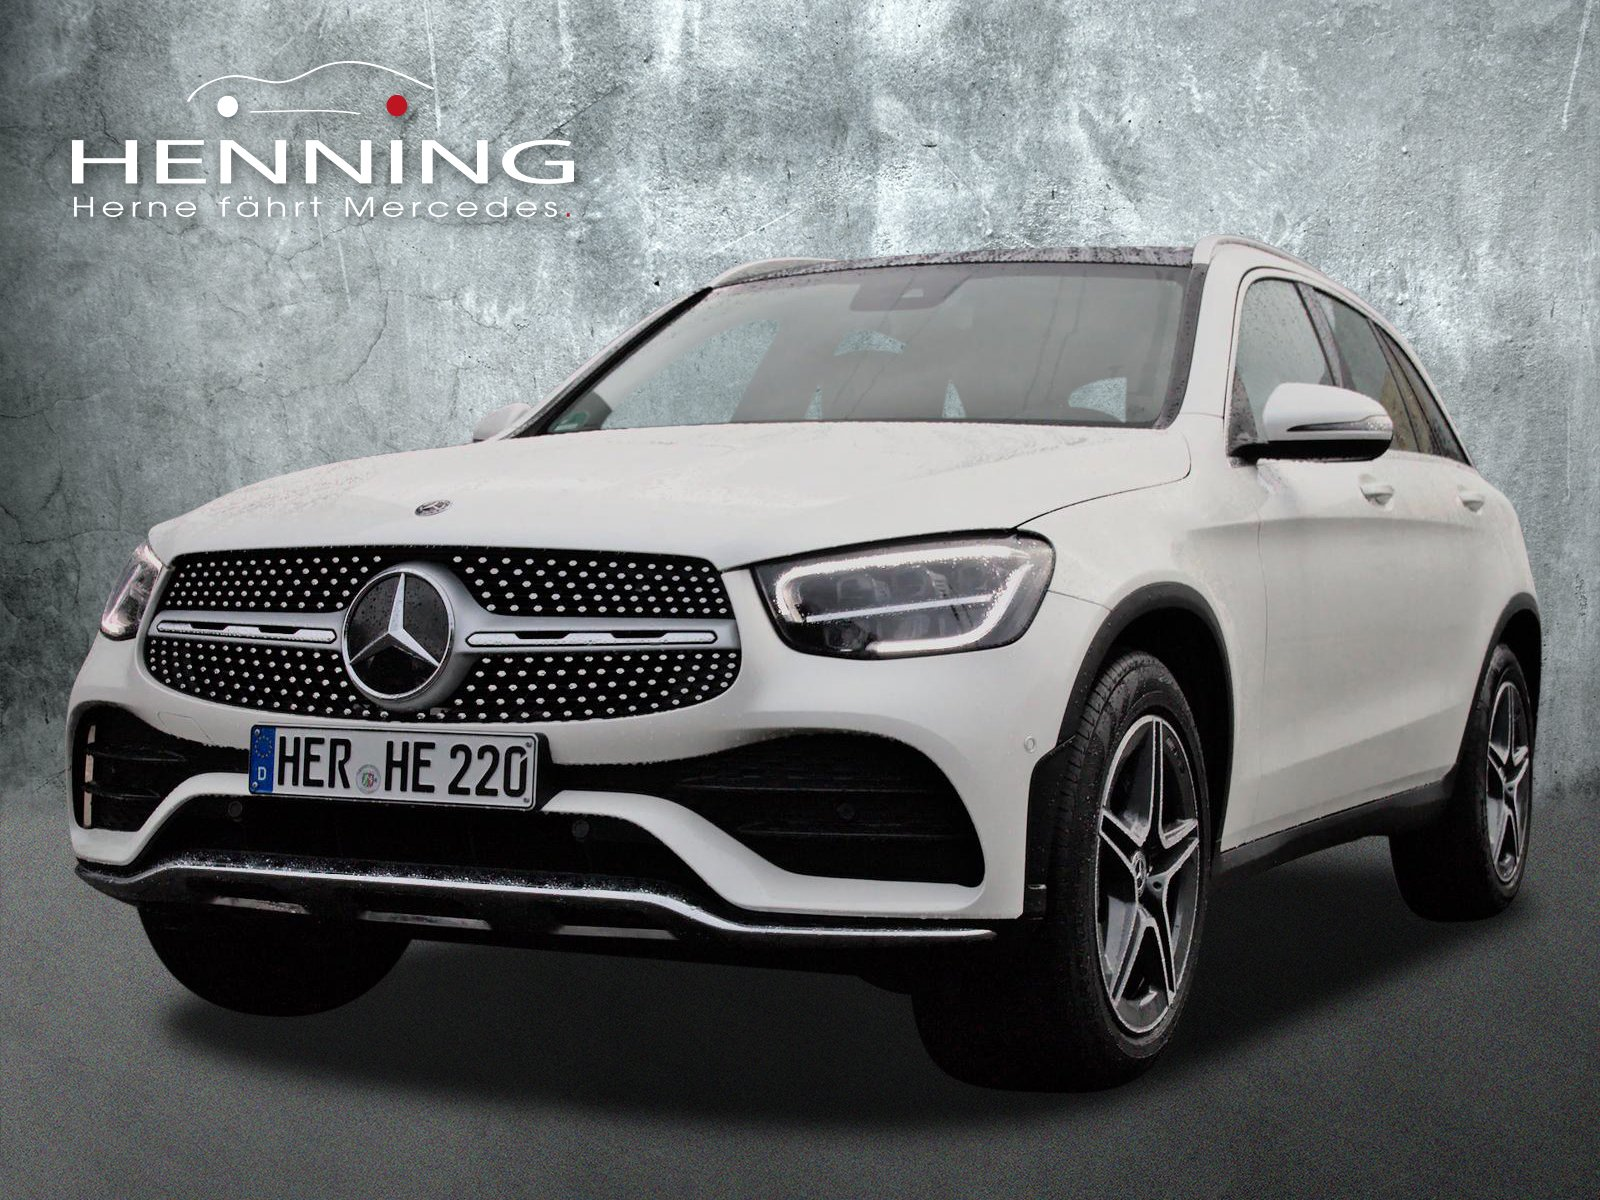 Mercedes-Benz GLC 220 d AMG 4Matic 9G Panorama LED Easy-Pack, Jahr 2019, Diesel